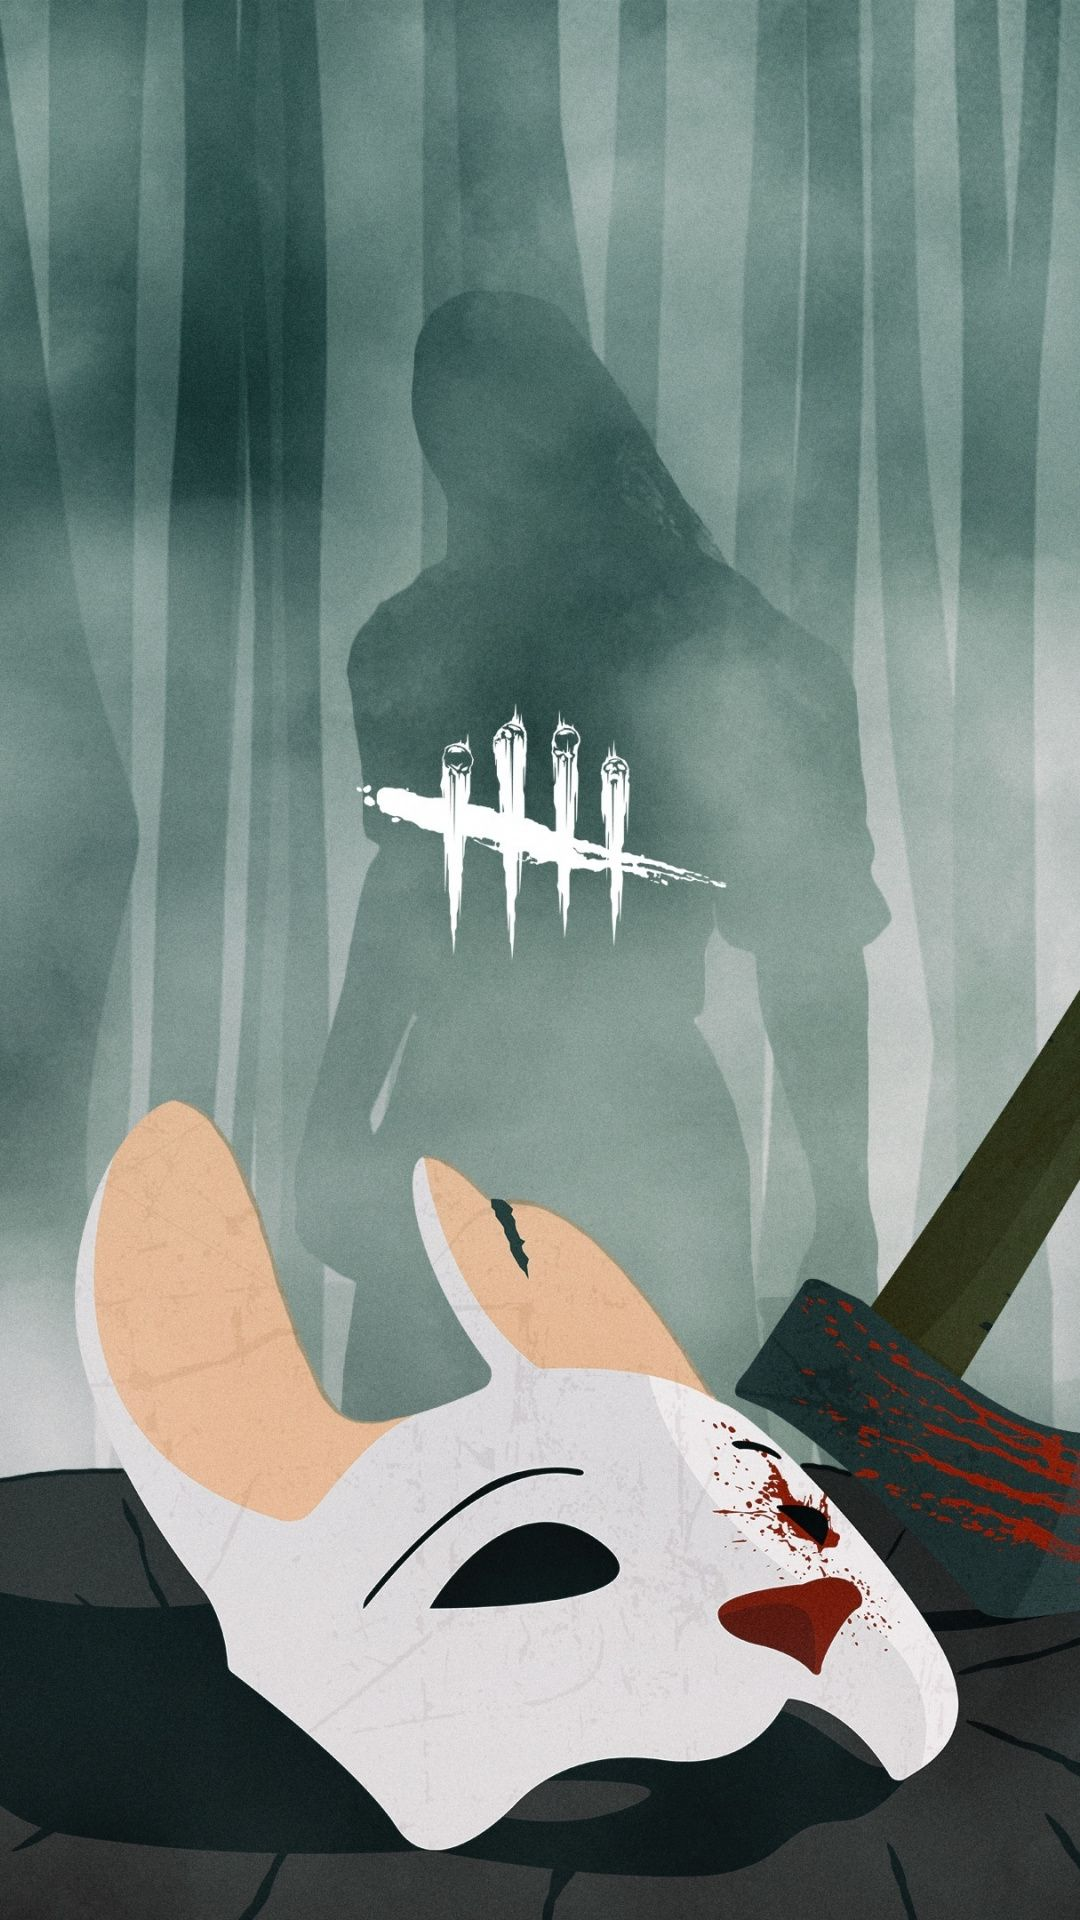 Huntress Dead By Daylight Mask And Axe Game 1080x1920 Wallpaper Horror Characters Dragon Ball Artwork Horror Villians